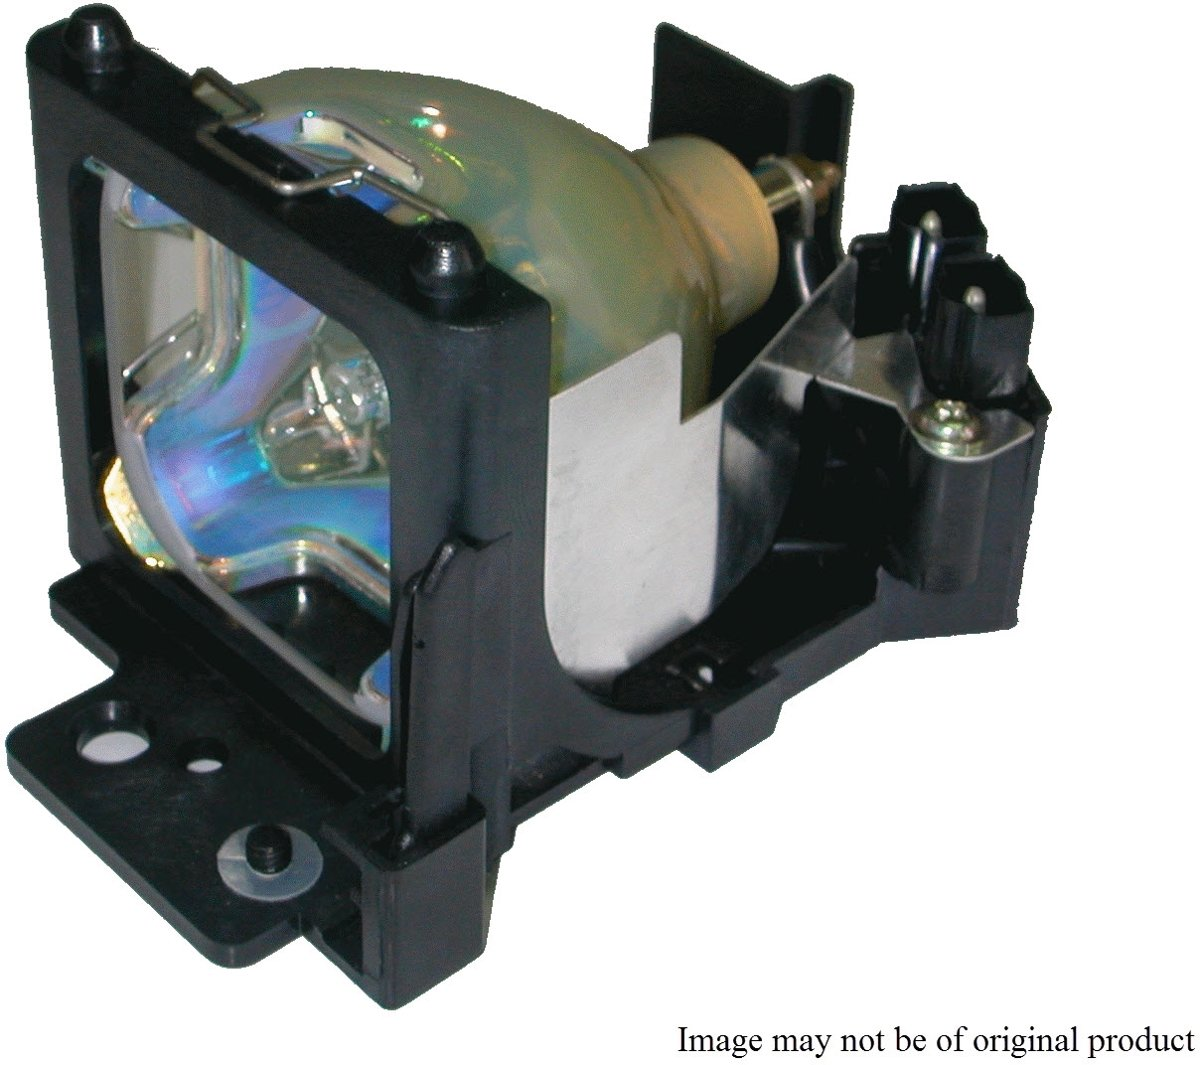 GO Lamps GL821 projectielamp 230 W UHP kopen